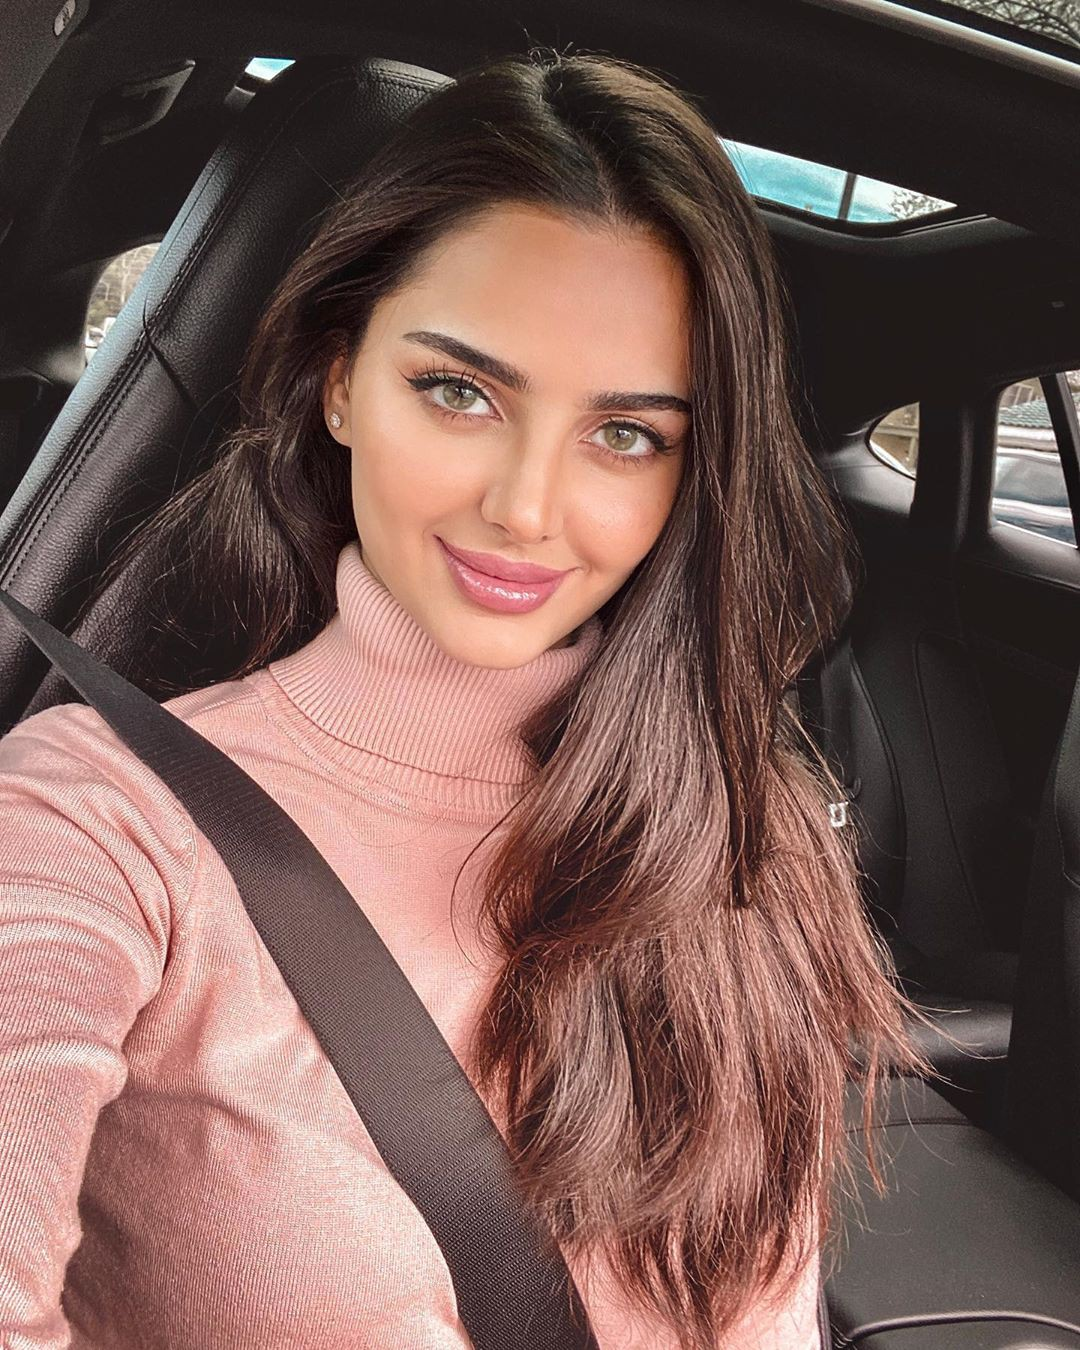 Mahlagha Jaberi Girls With Cute Face, Lip Makeup, Easy Long Hairstyles